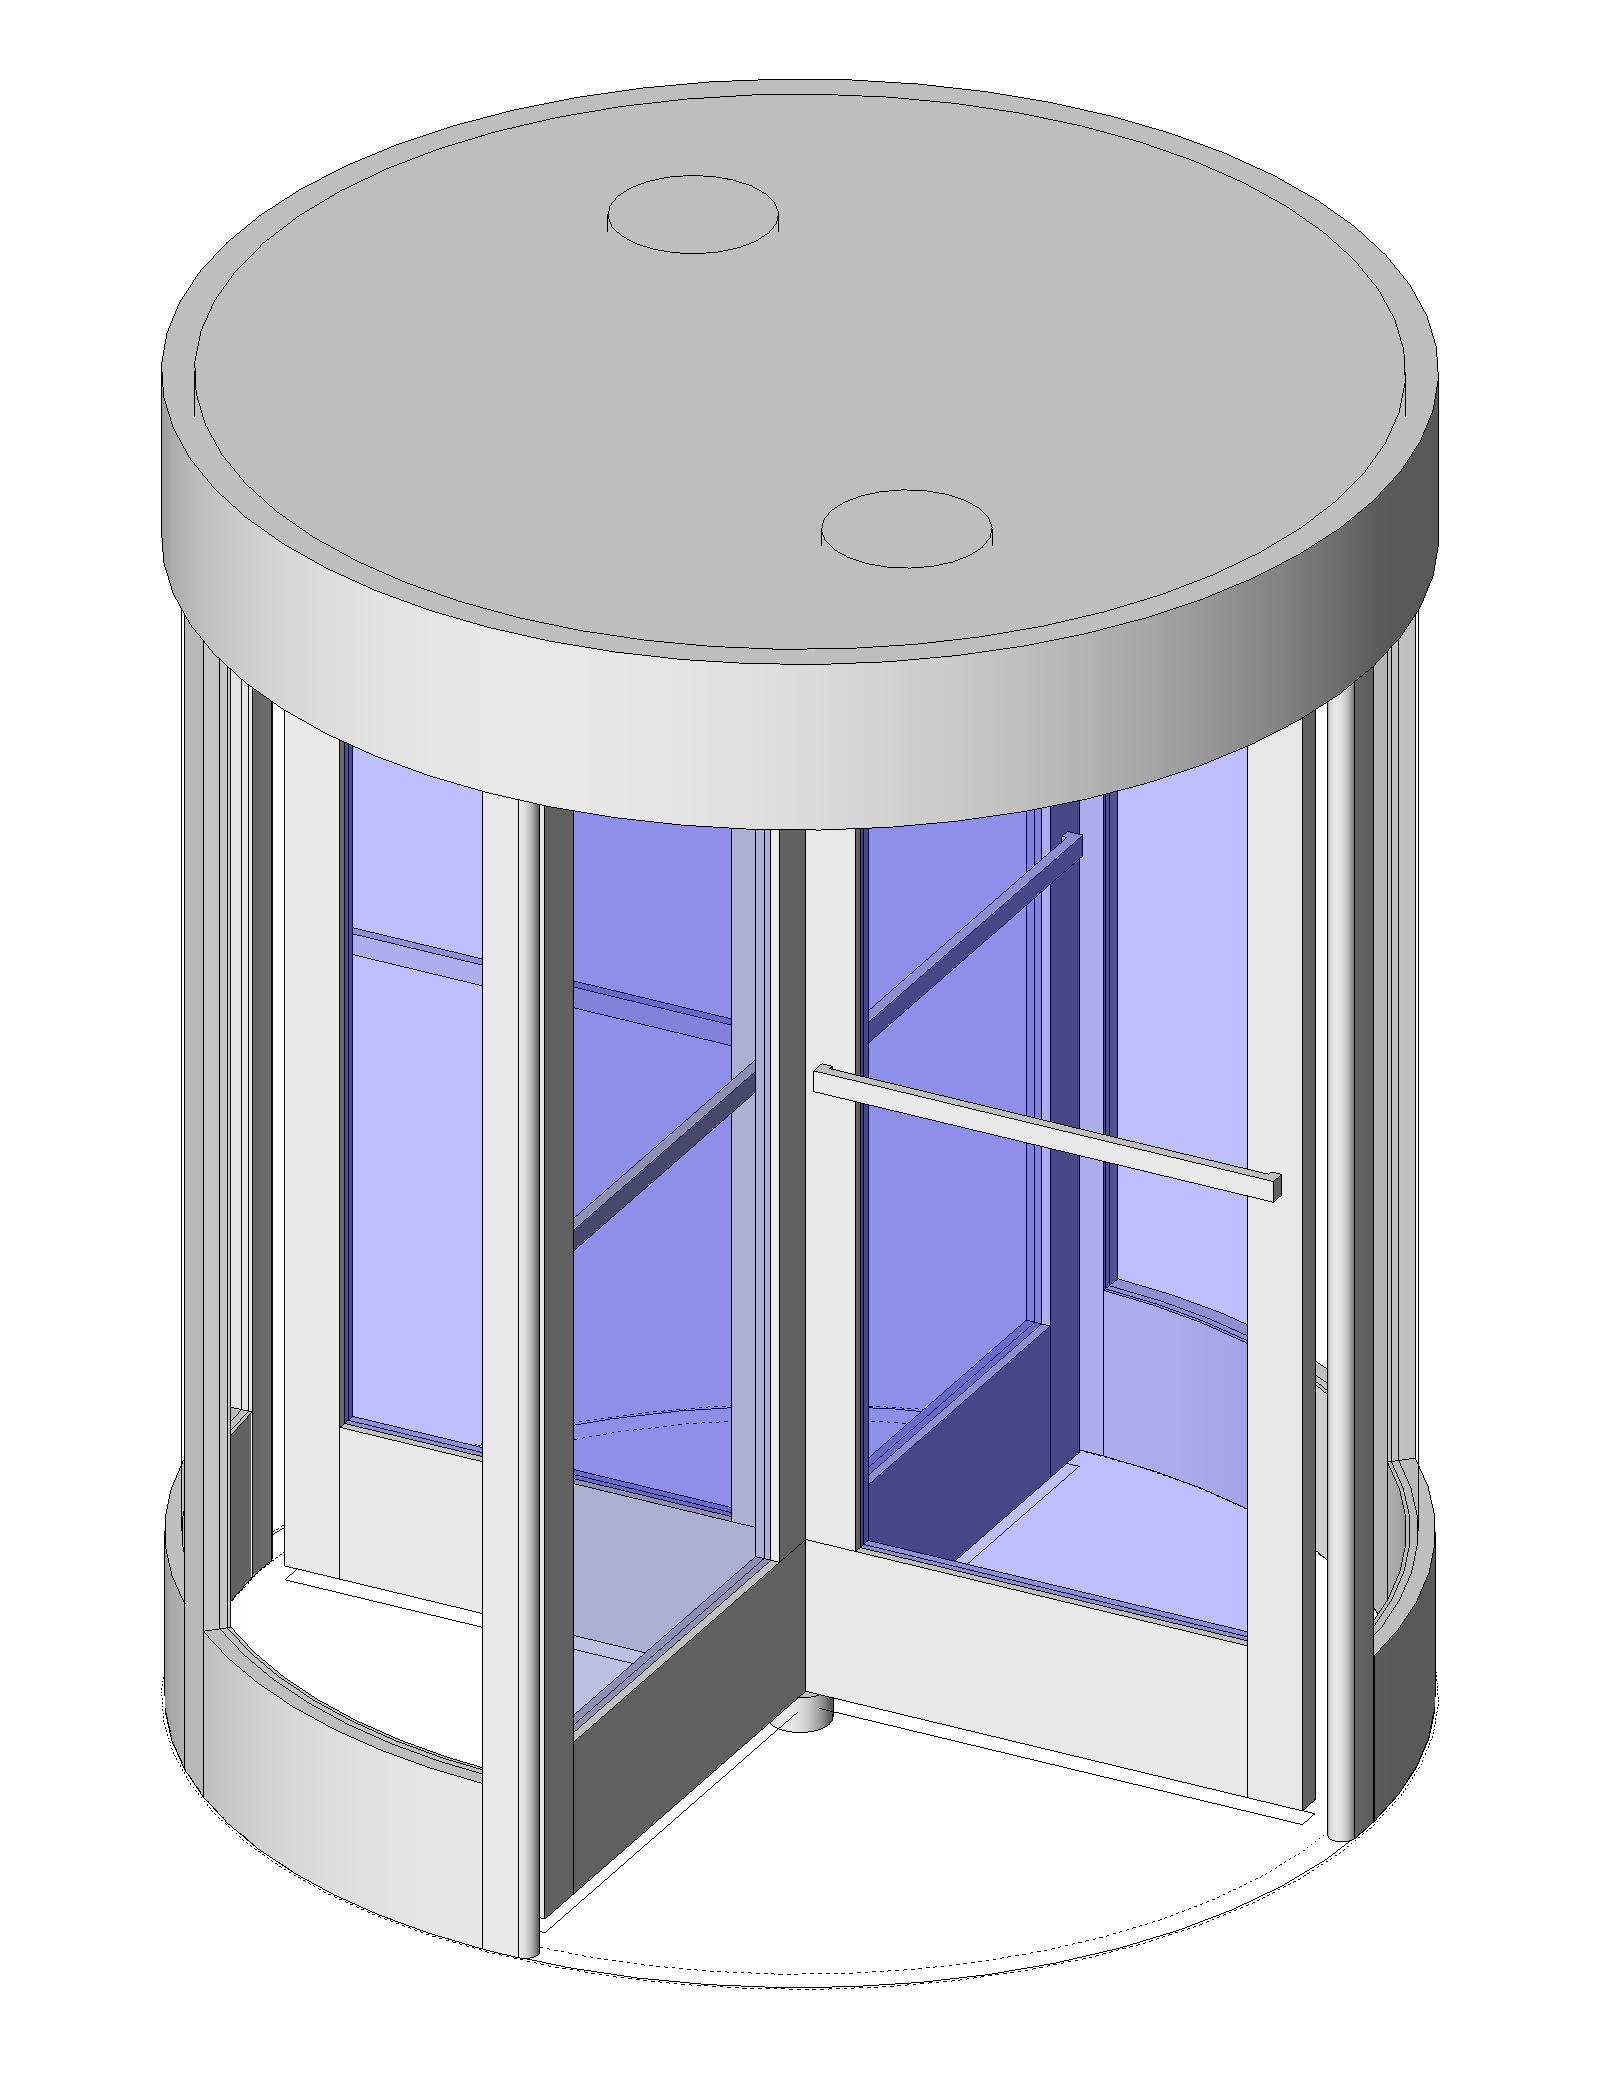 20 Benefits Of Installing A Revolving Door Interior Amp Exterior Ideas